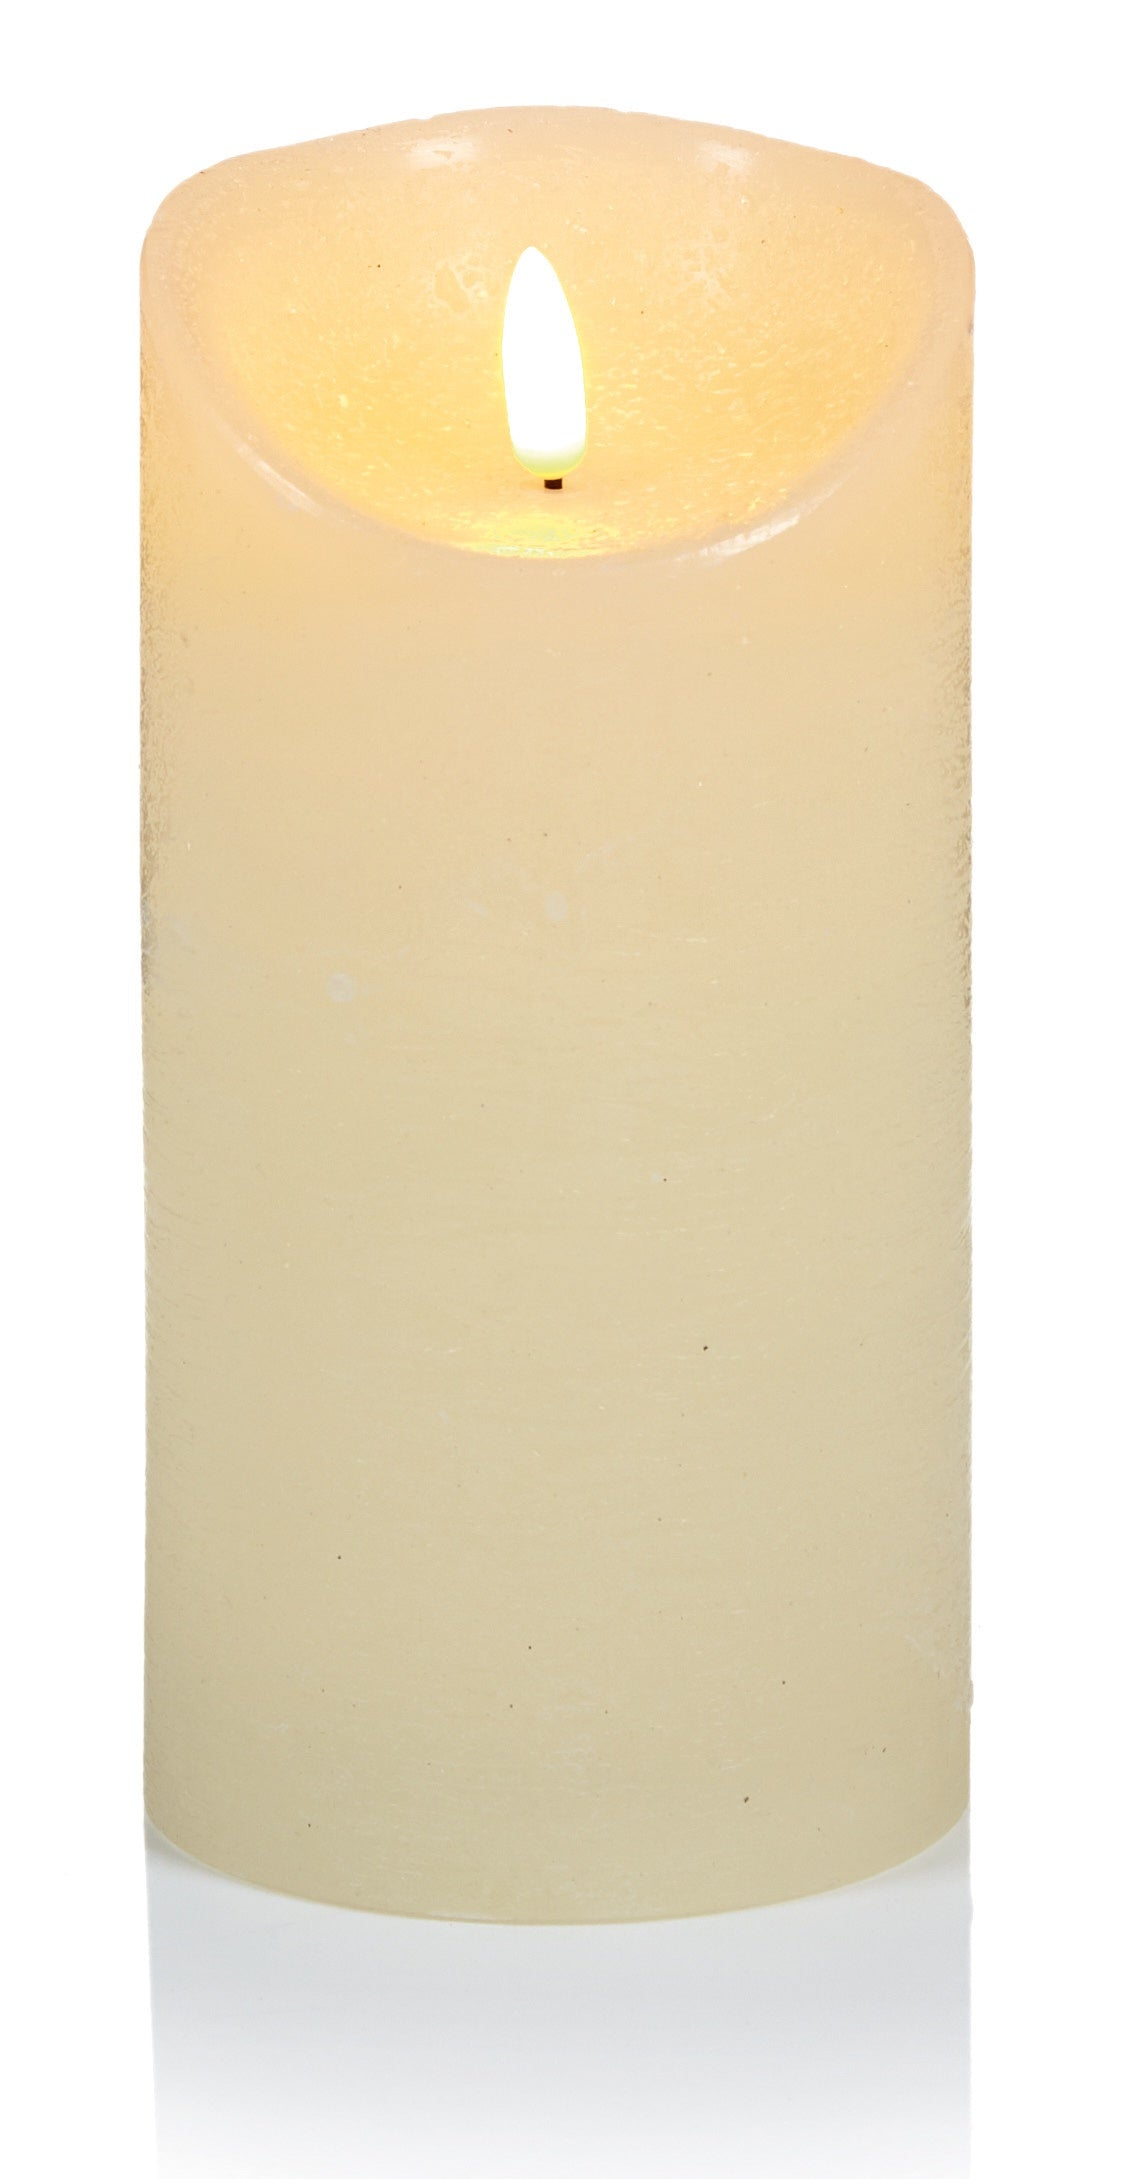 18x9cm Cream Flickerbright Textured Candle